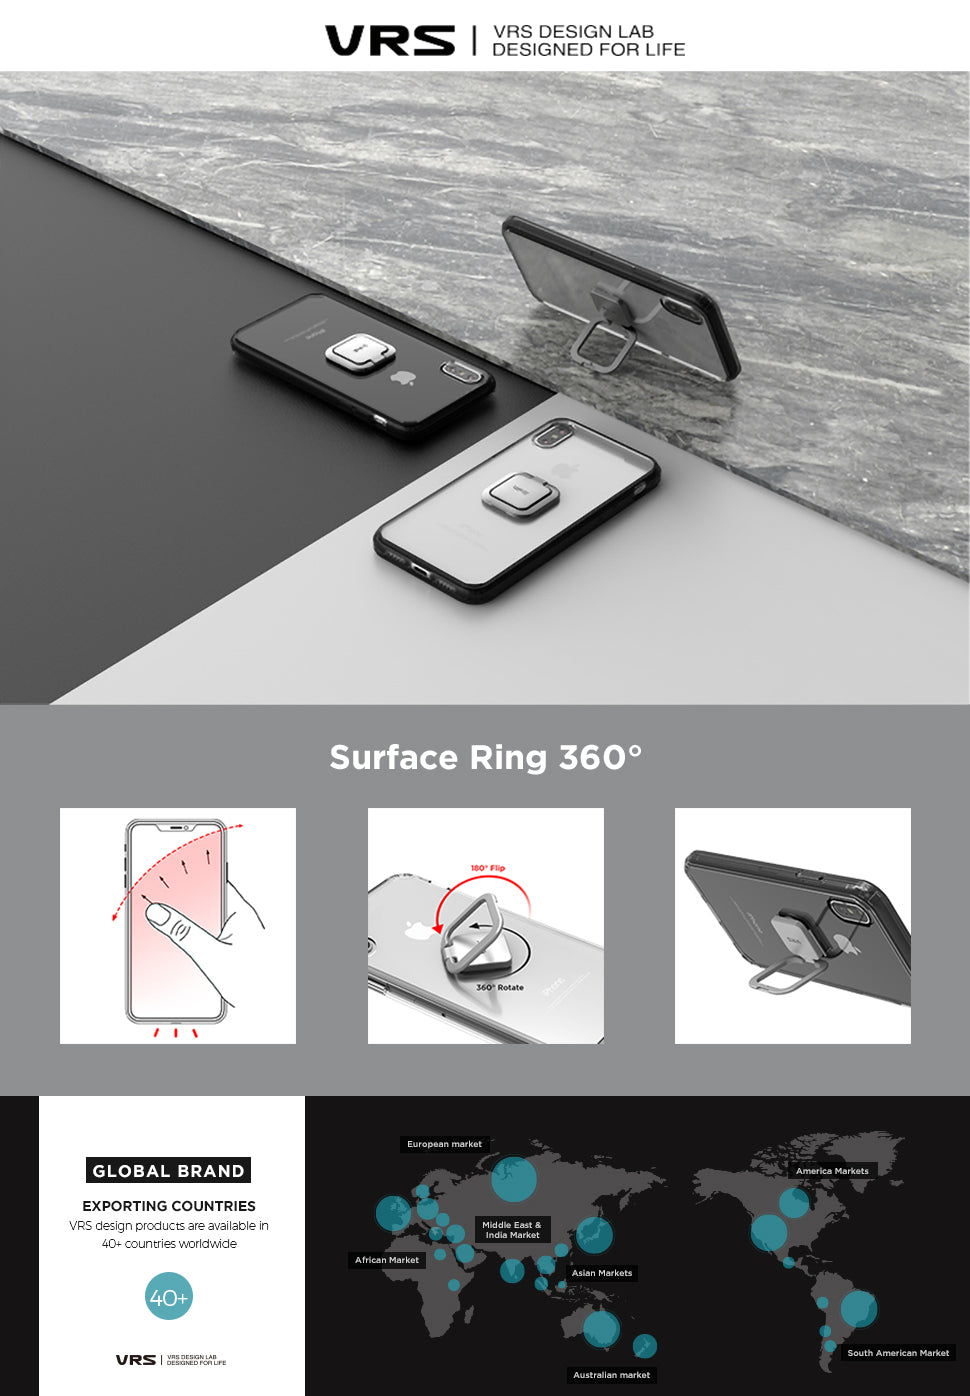 Surface Ring 360° from VRS Design